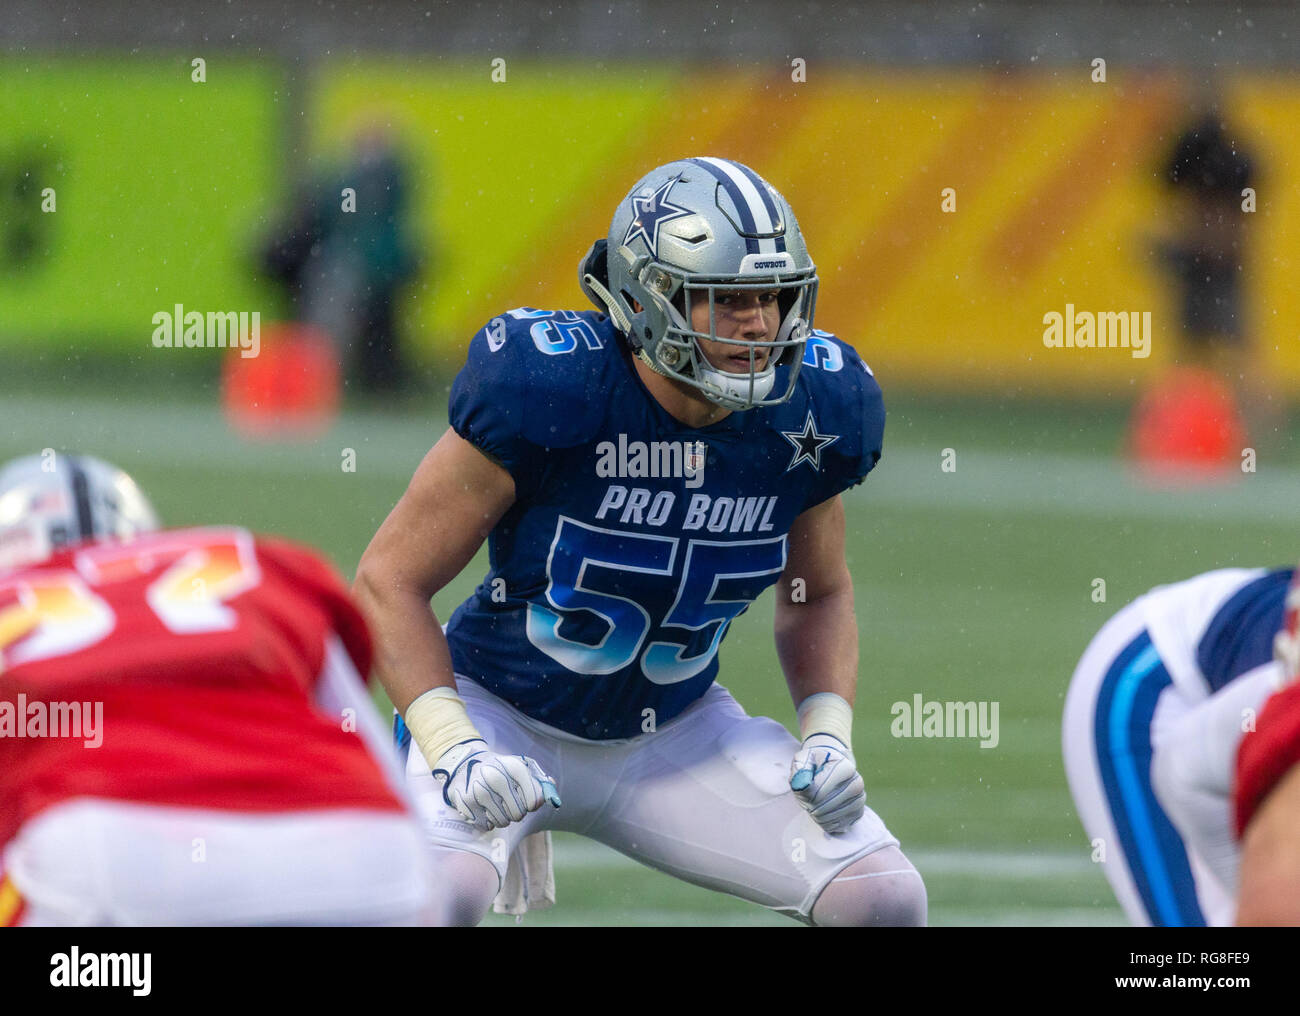 Leighton Vander Esch Stock Photos   Leighton Vander Esch Stock ... 084a07a4e